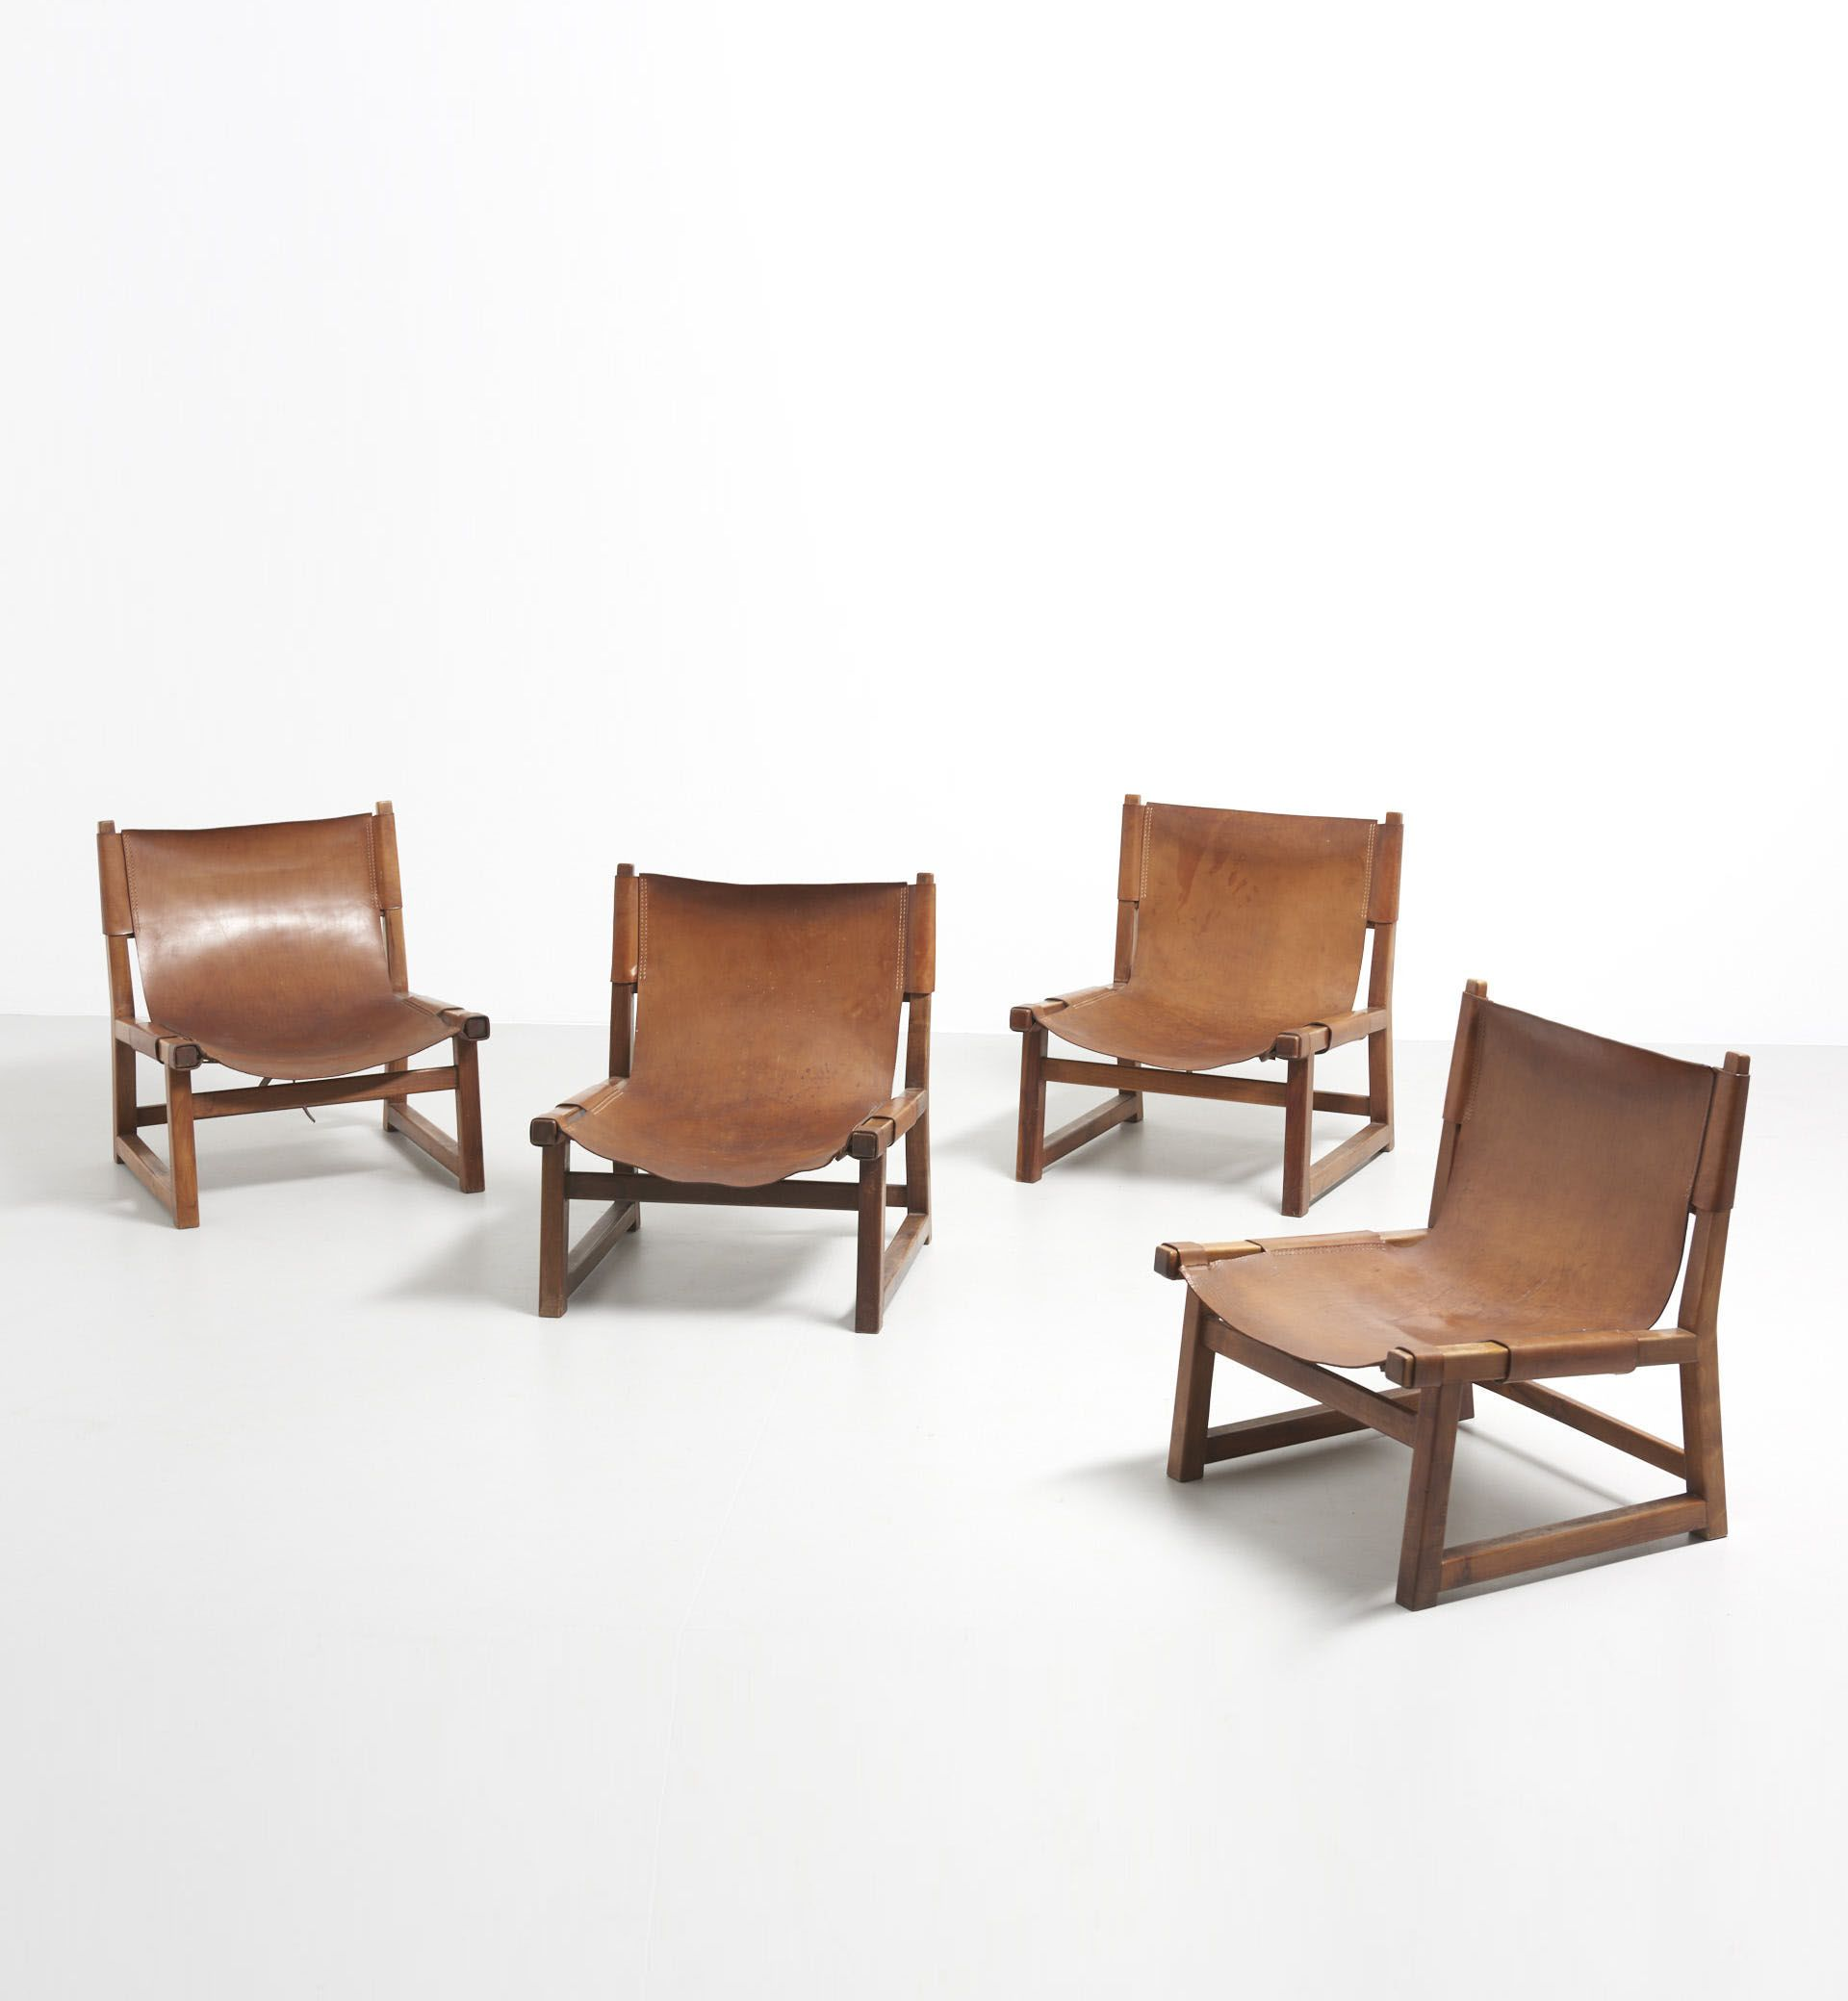 Relax Fauteuil Creme Leer.4 X Riaza Hunting Chair Paco Munoz Design Modest Furniture